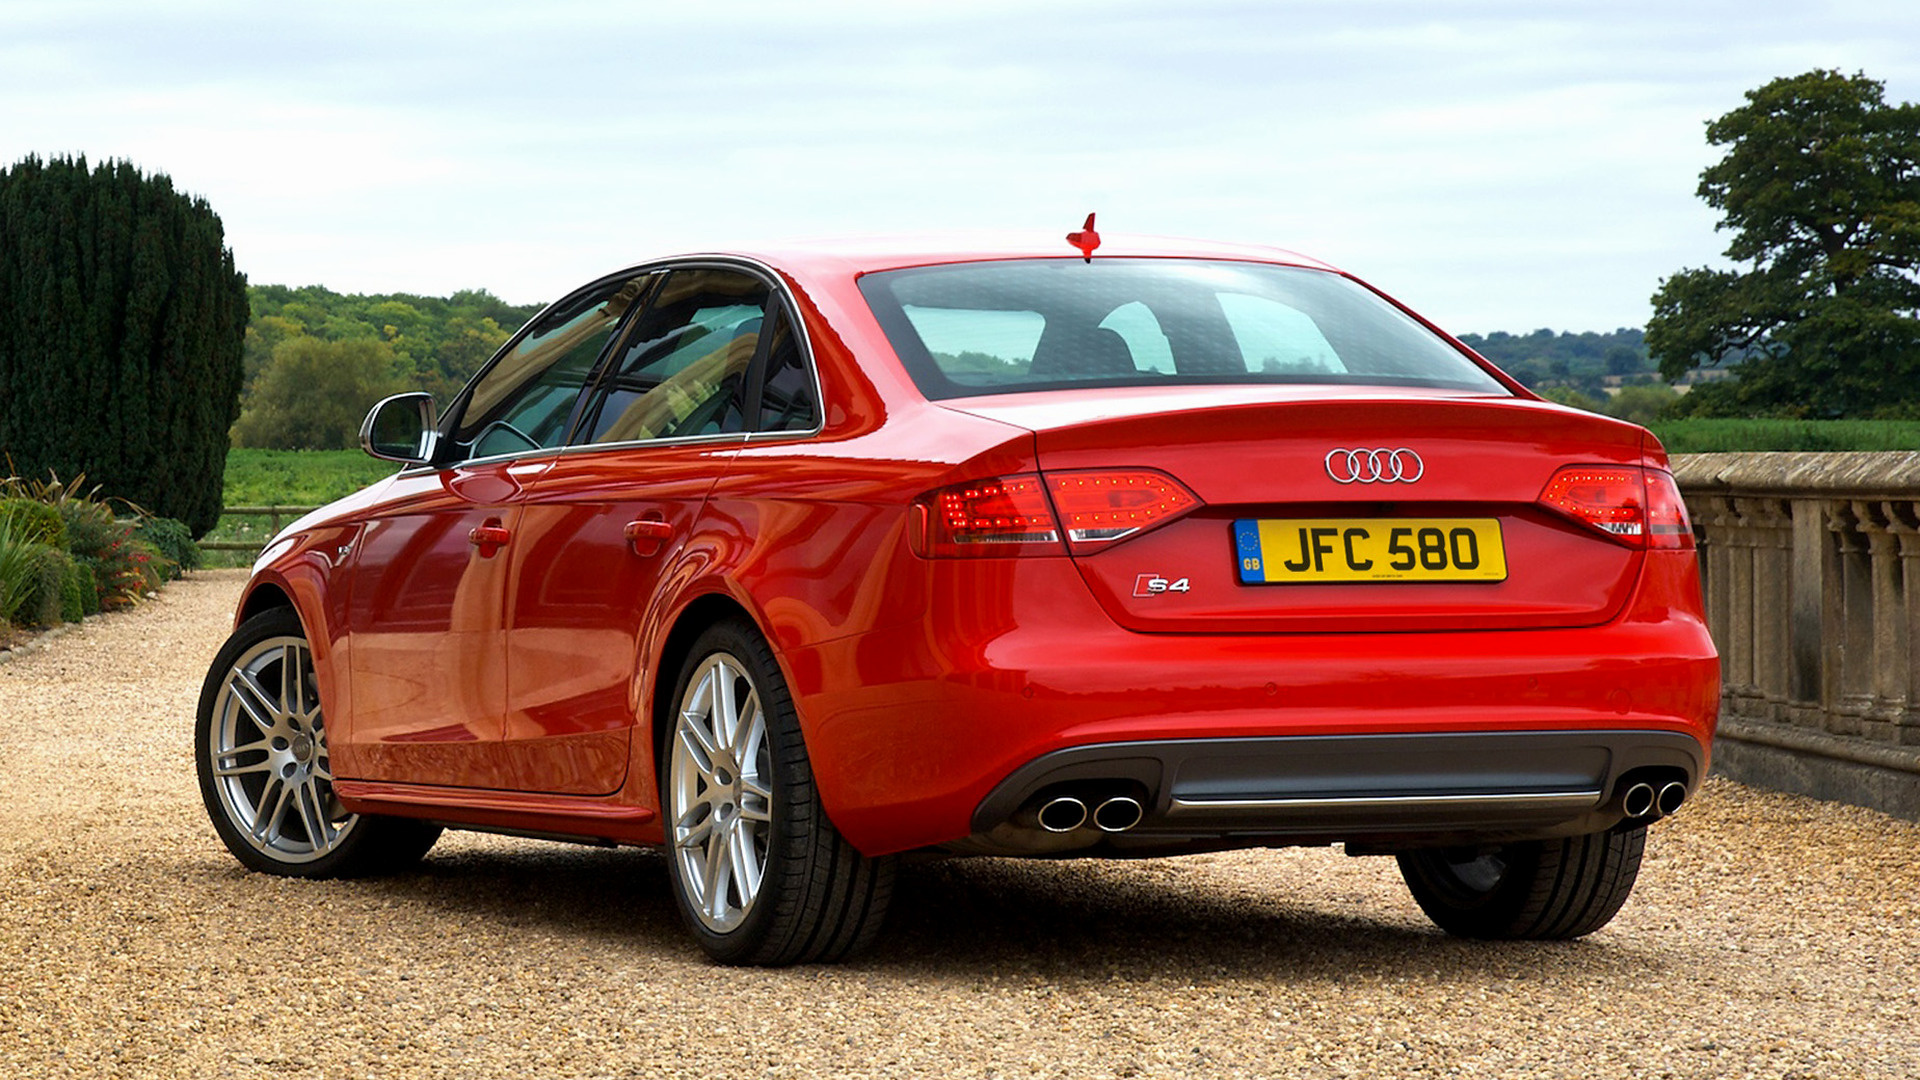 Audi S4 Saloon 2009 UK Wallpapers and HD Images 1920x1080